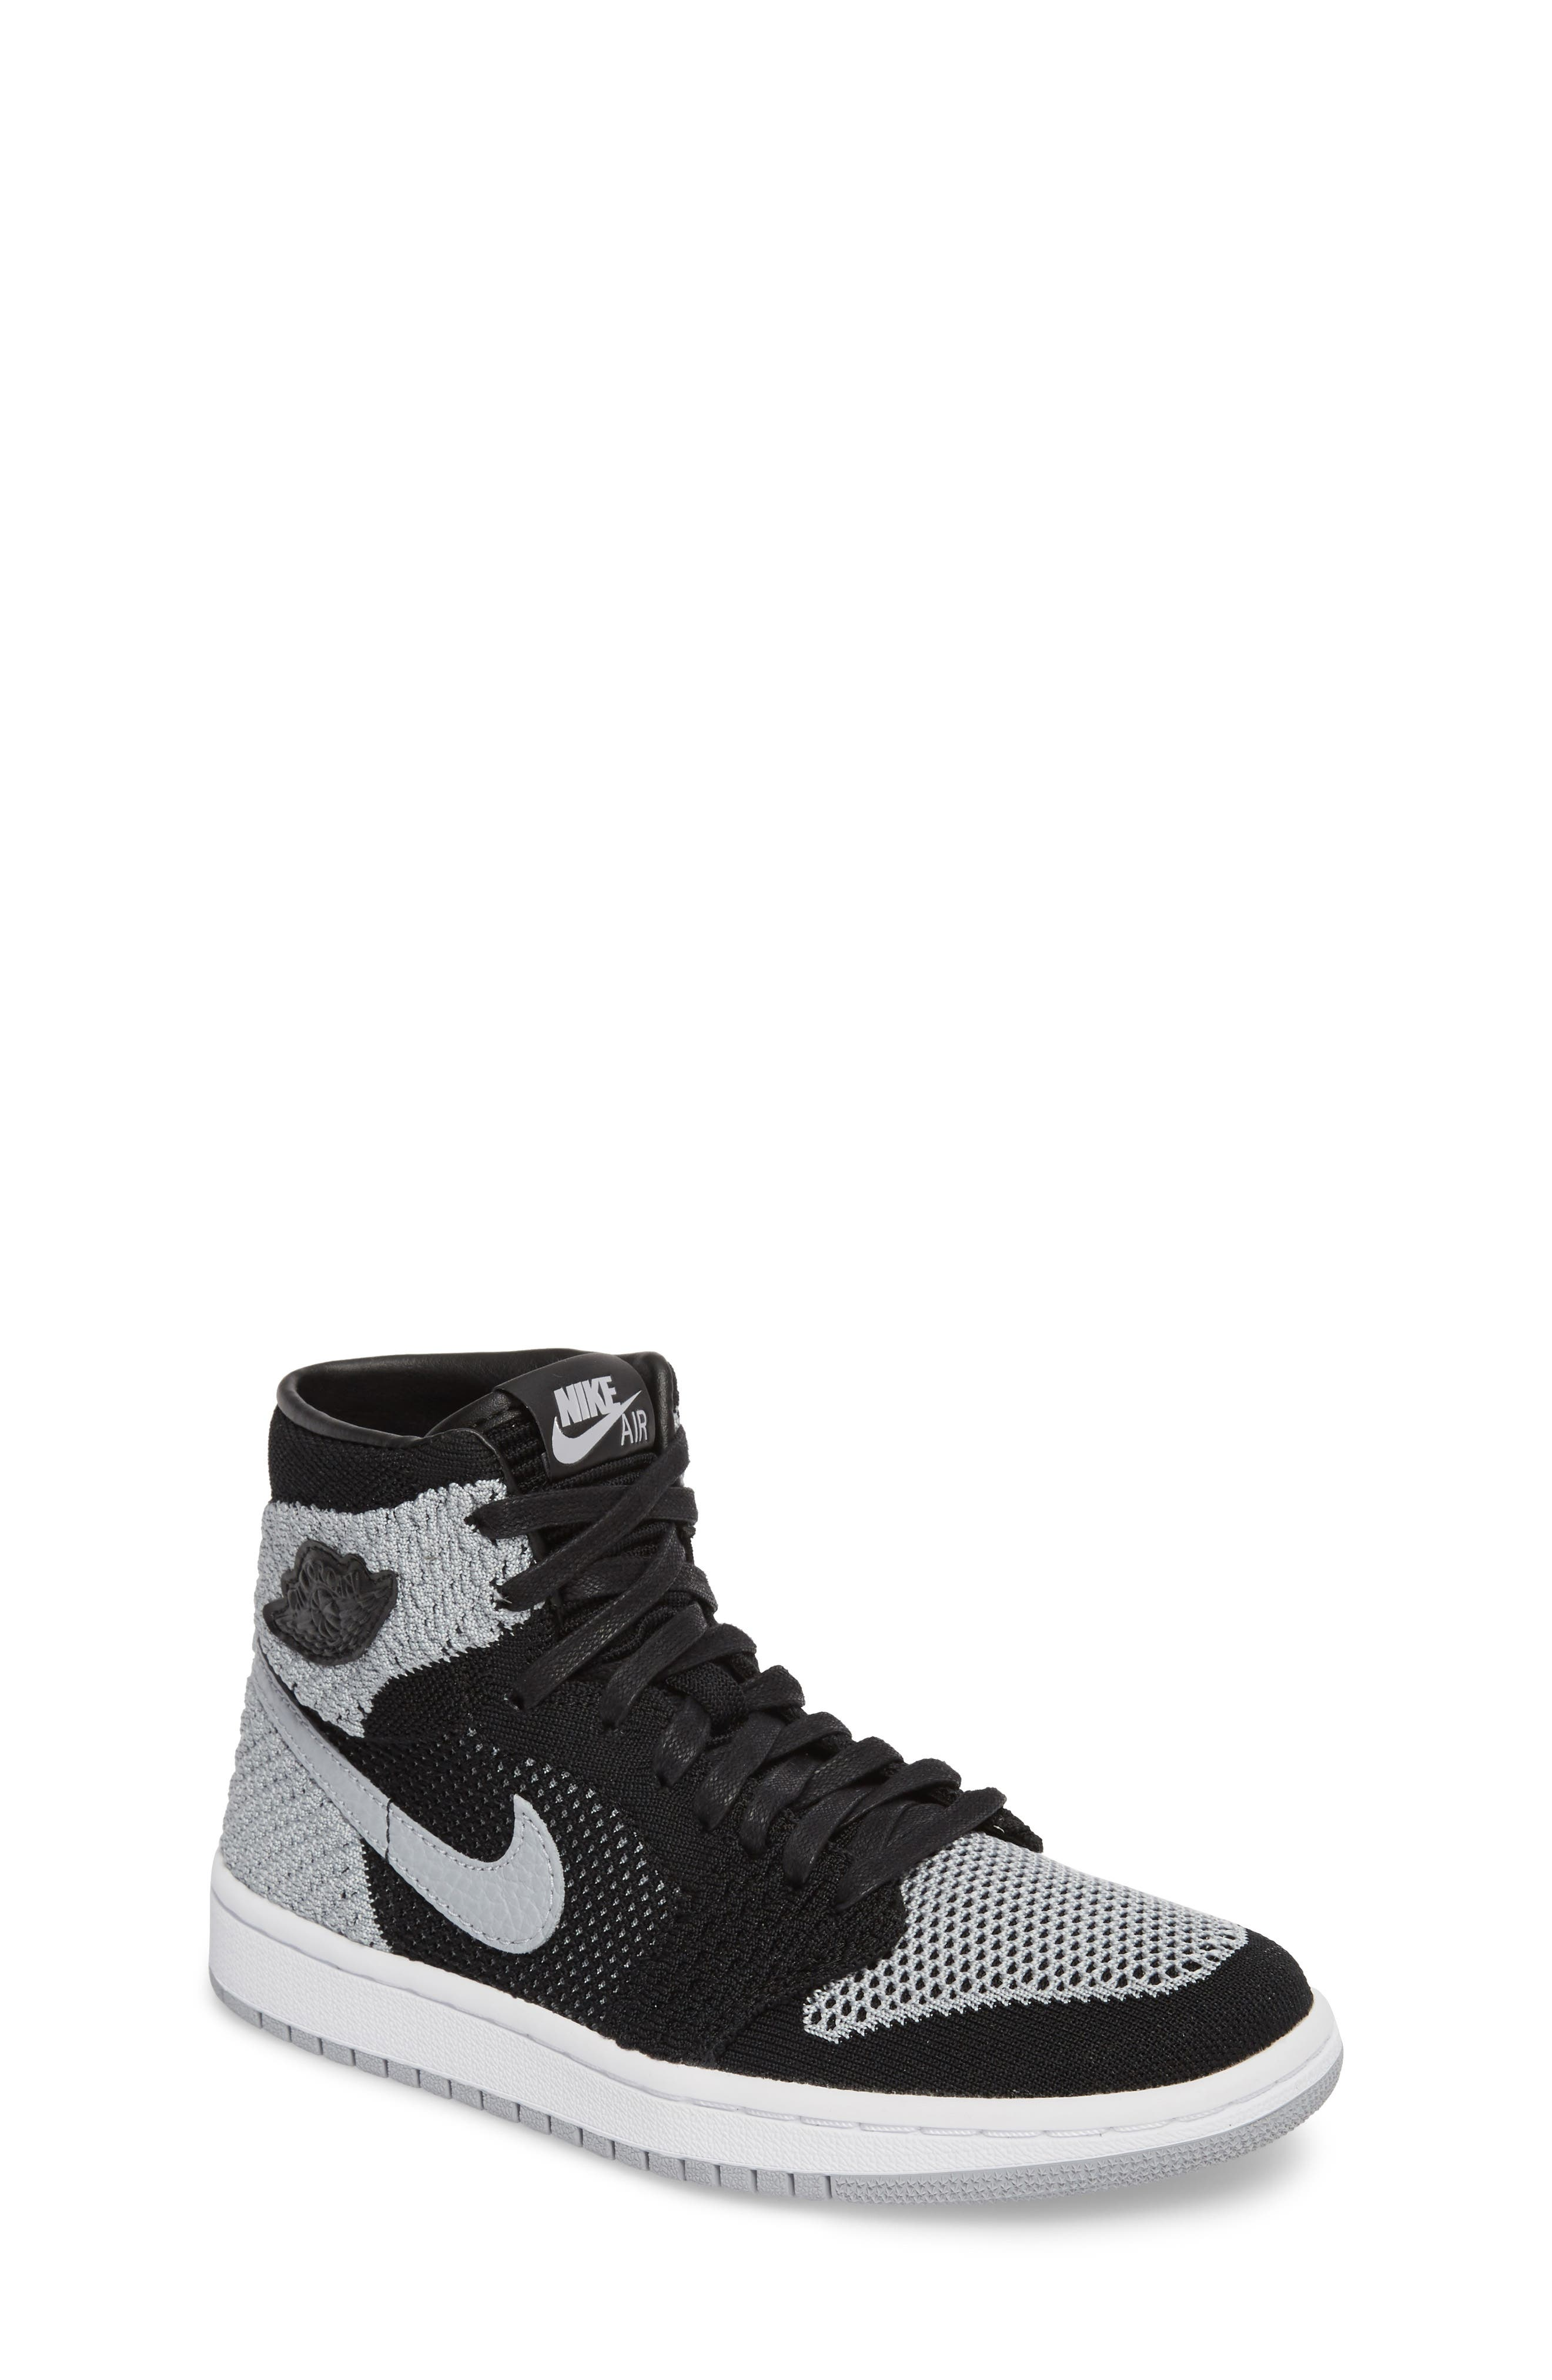 Nike Air Jordan 1 Retro High Flyknit Sneaker,                         Main,                         color, Black/ Wolf Grey/ White